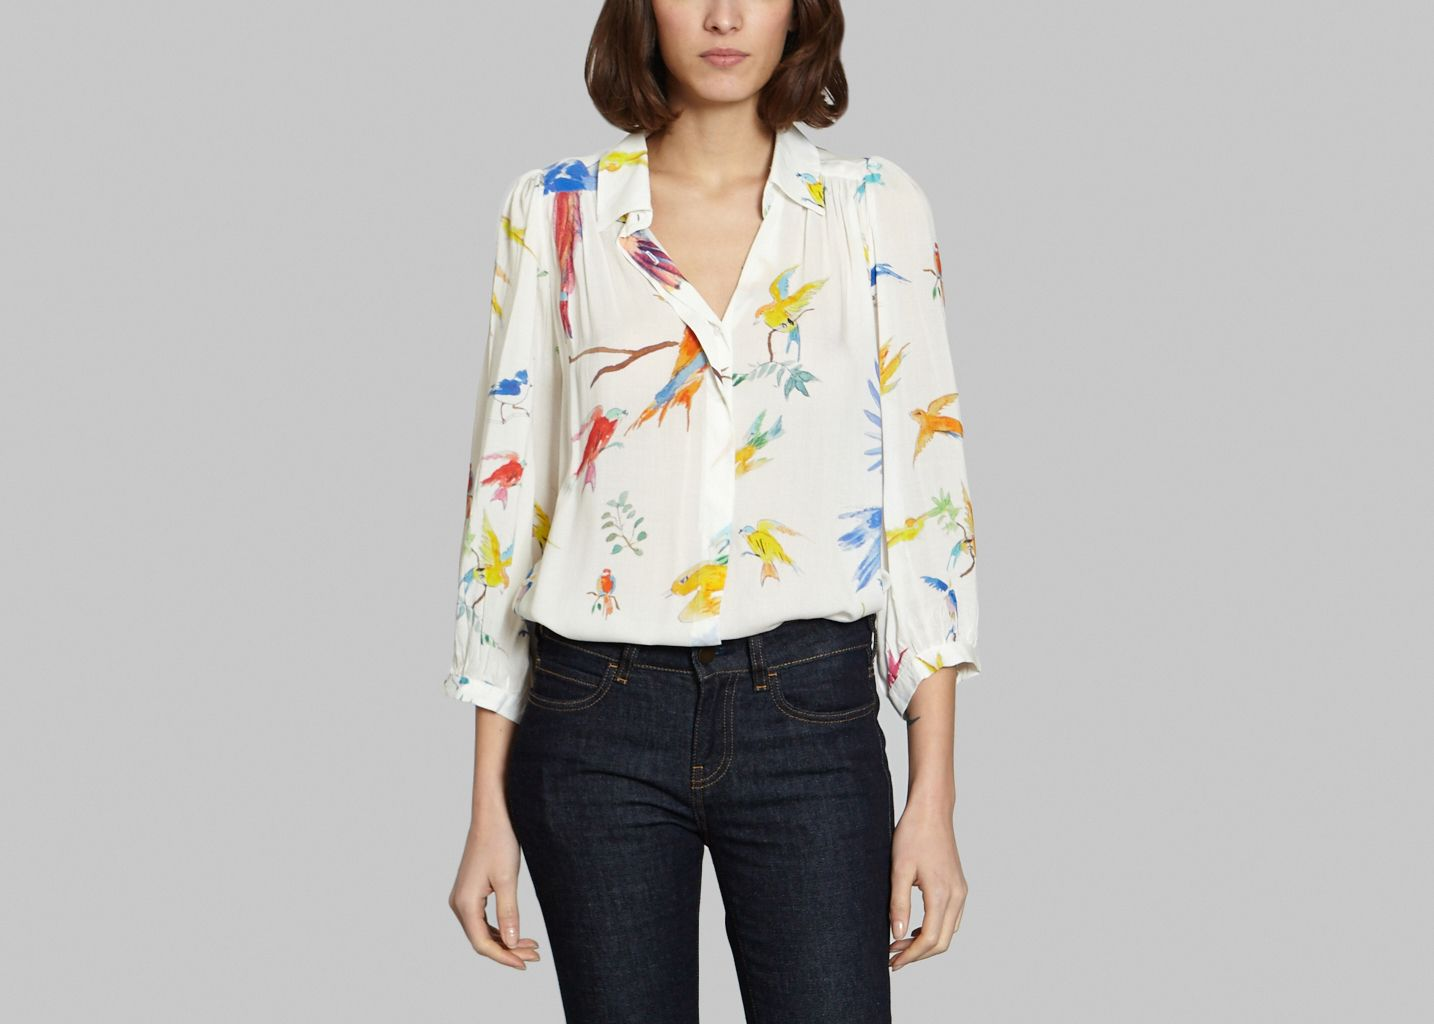 Blouse Flying Birds - G.Kero